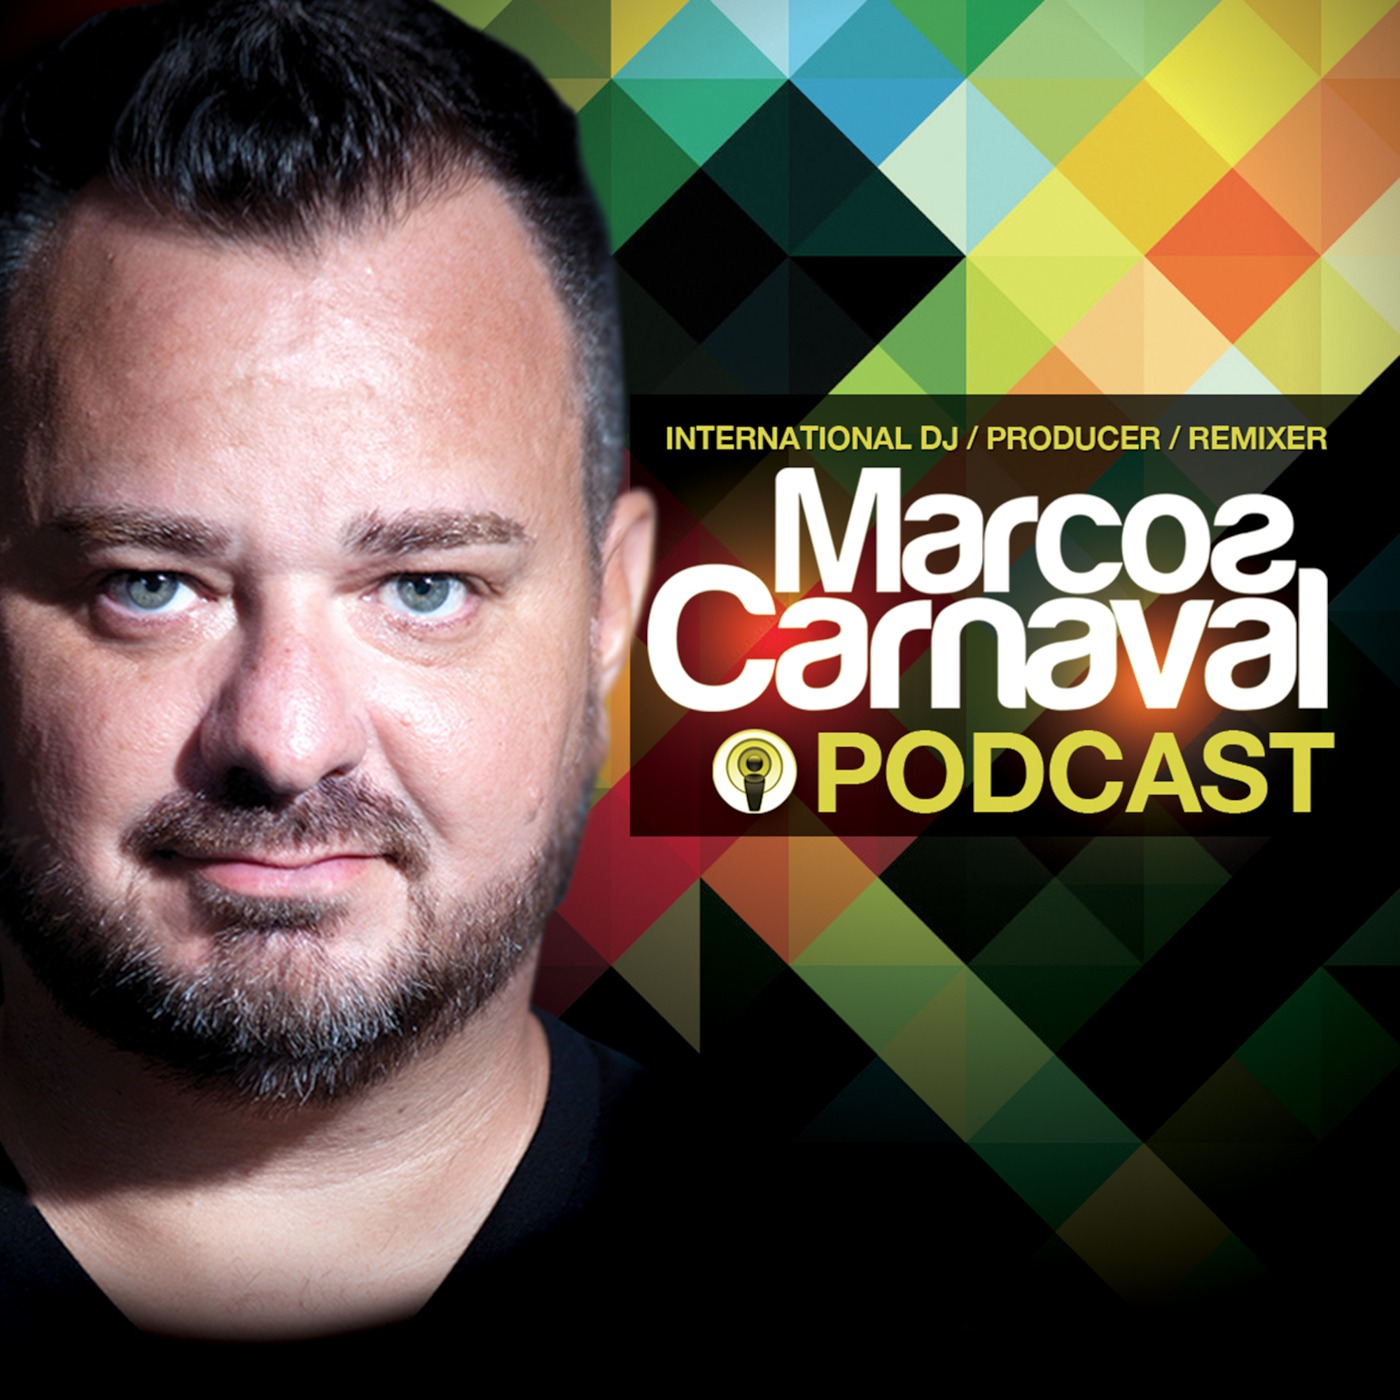 Marcos Carnaval Podcast